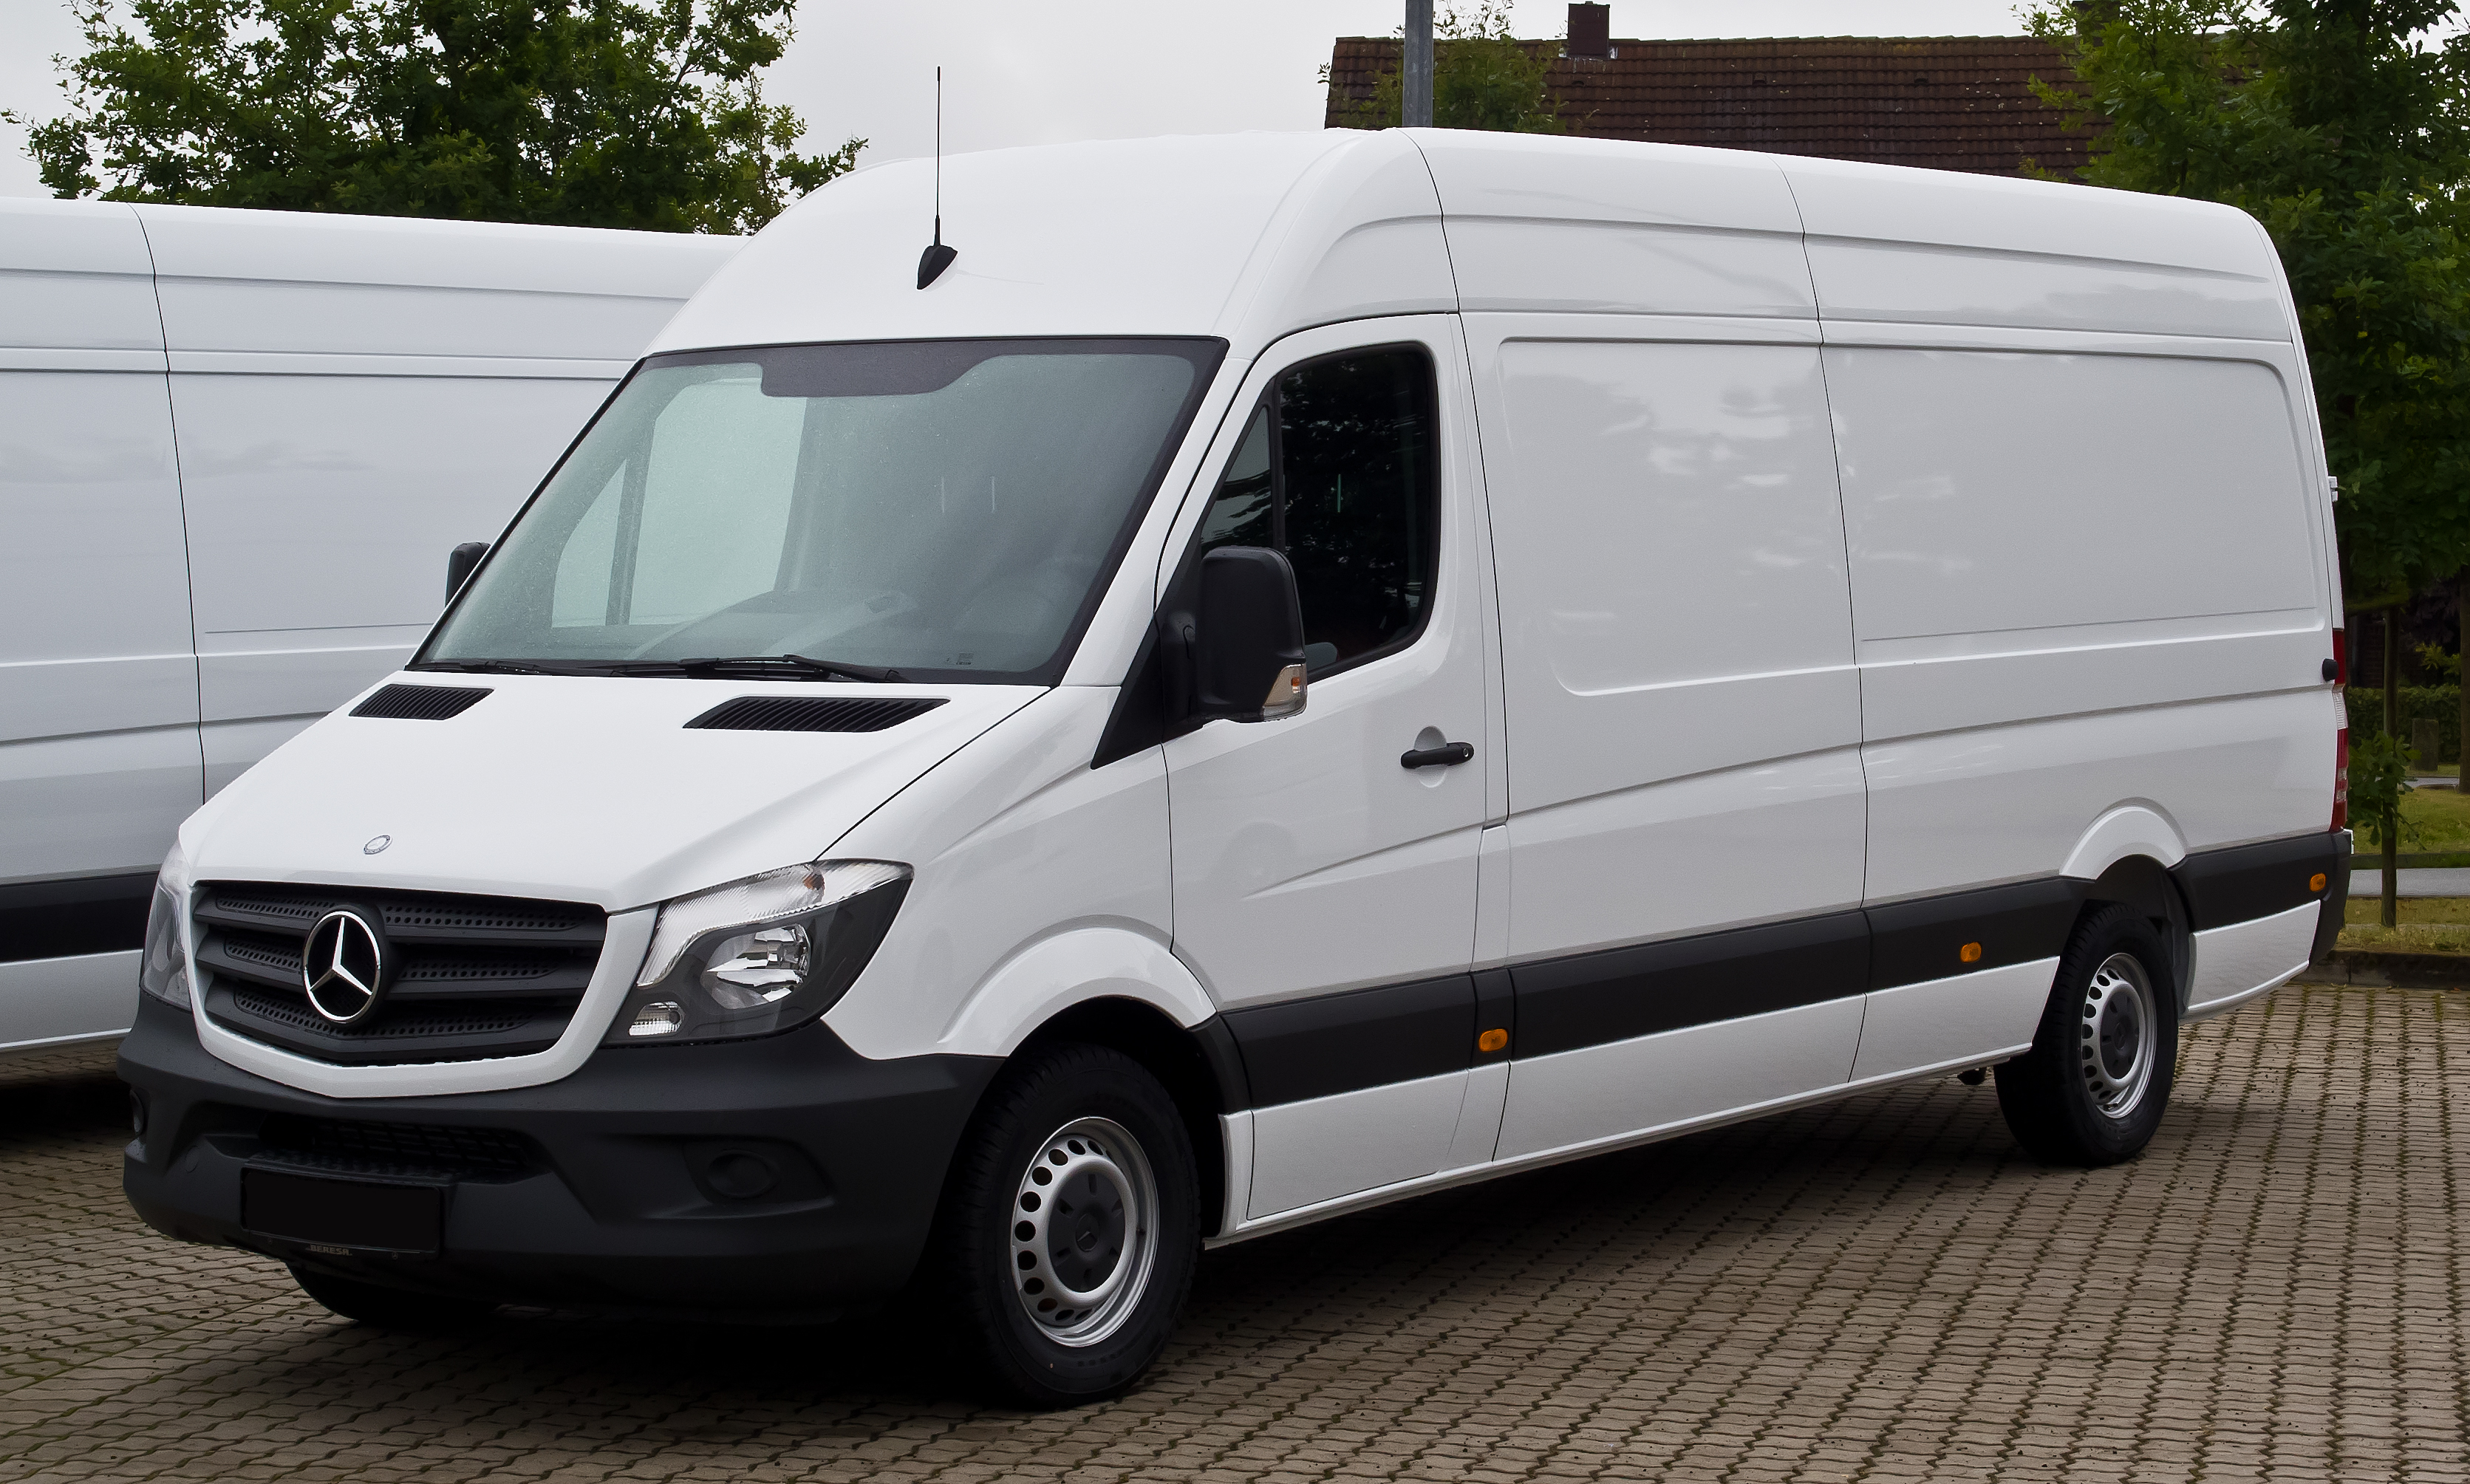 req civilian mercedes sprinter lwb suggestions requests. Black Bedroom Furniture Sets. Home Design Ideas